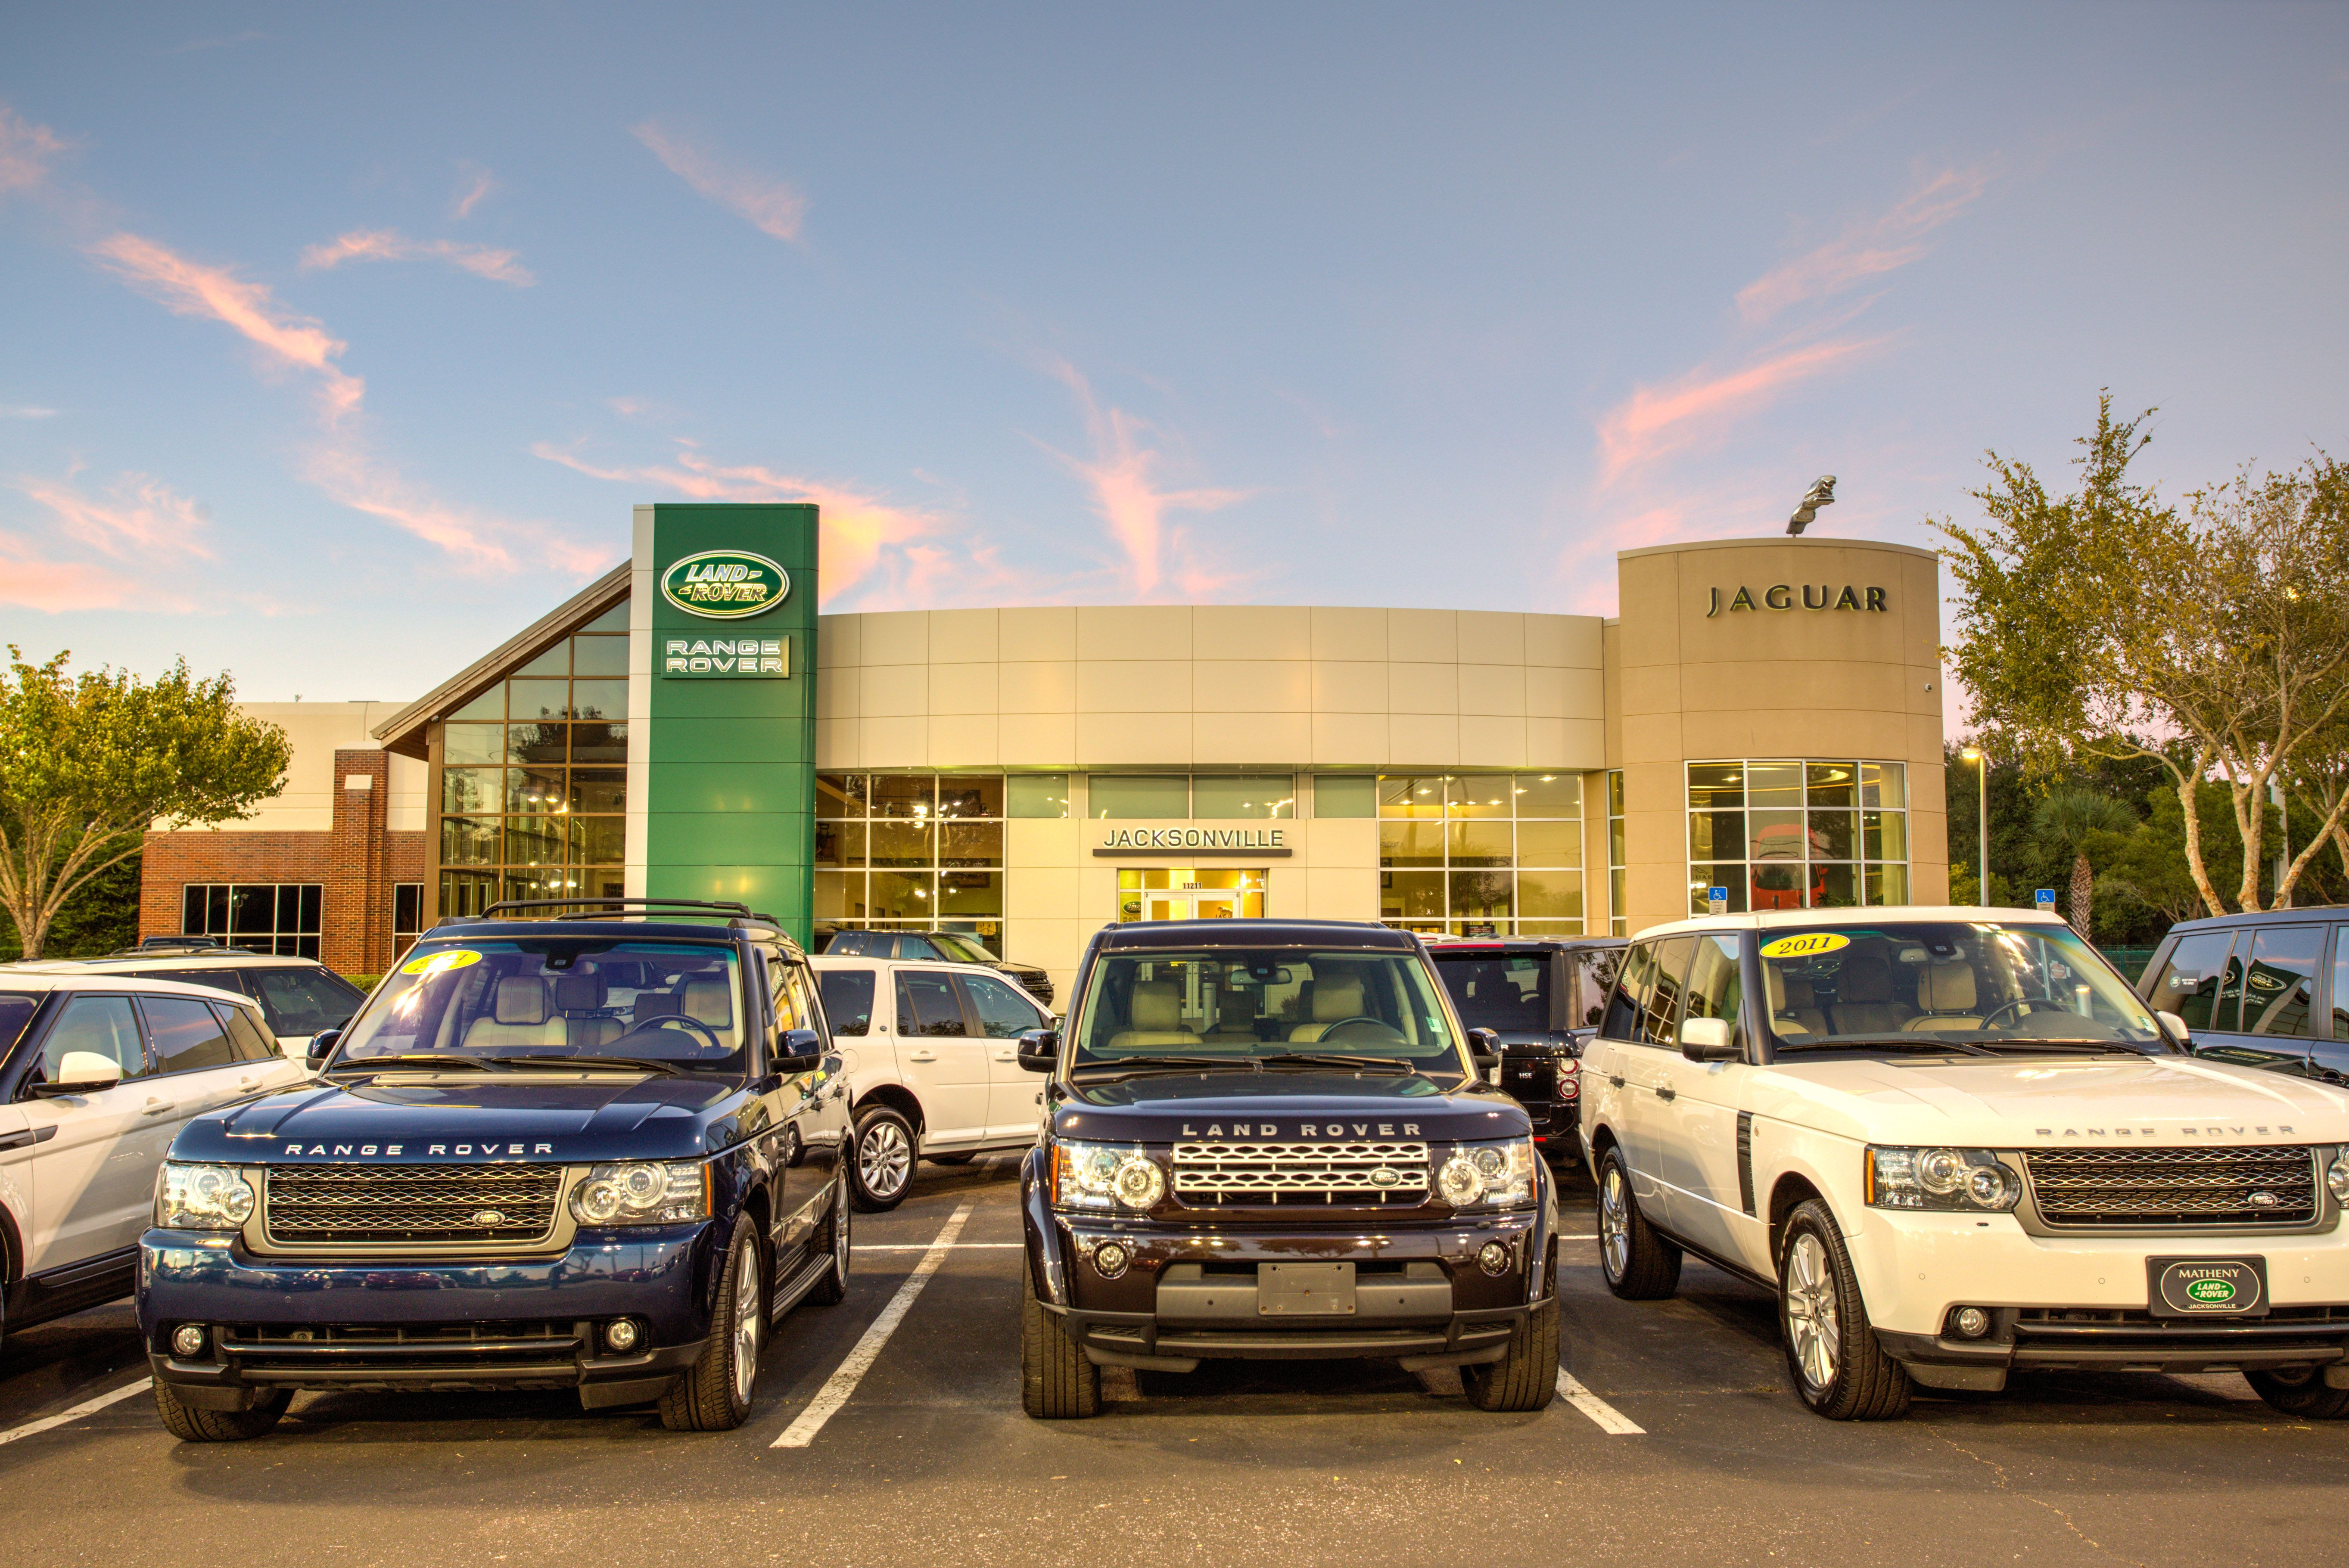 s of our Jaguar and Land Rover Dealership located at